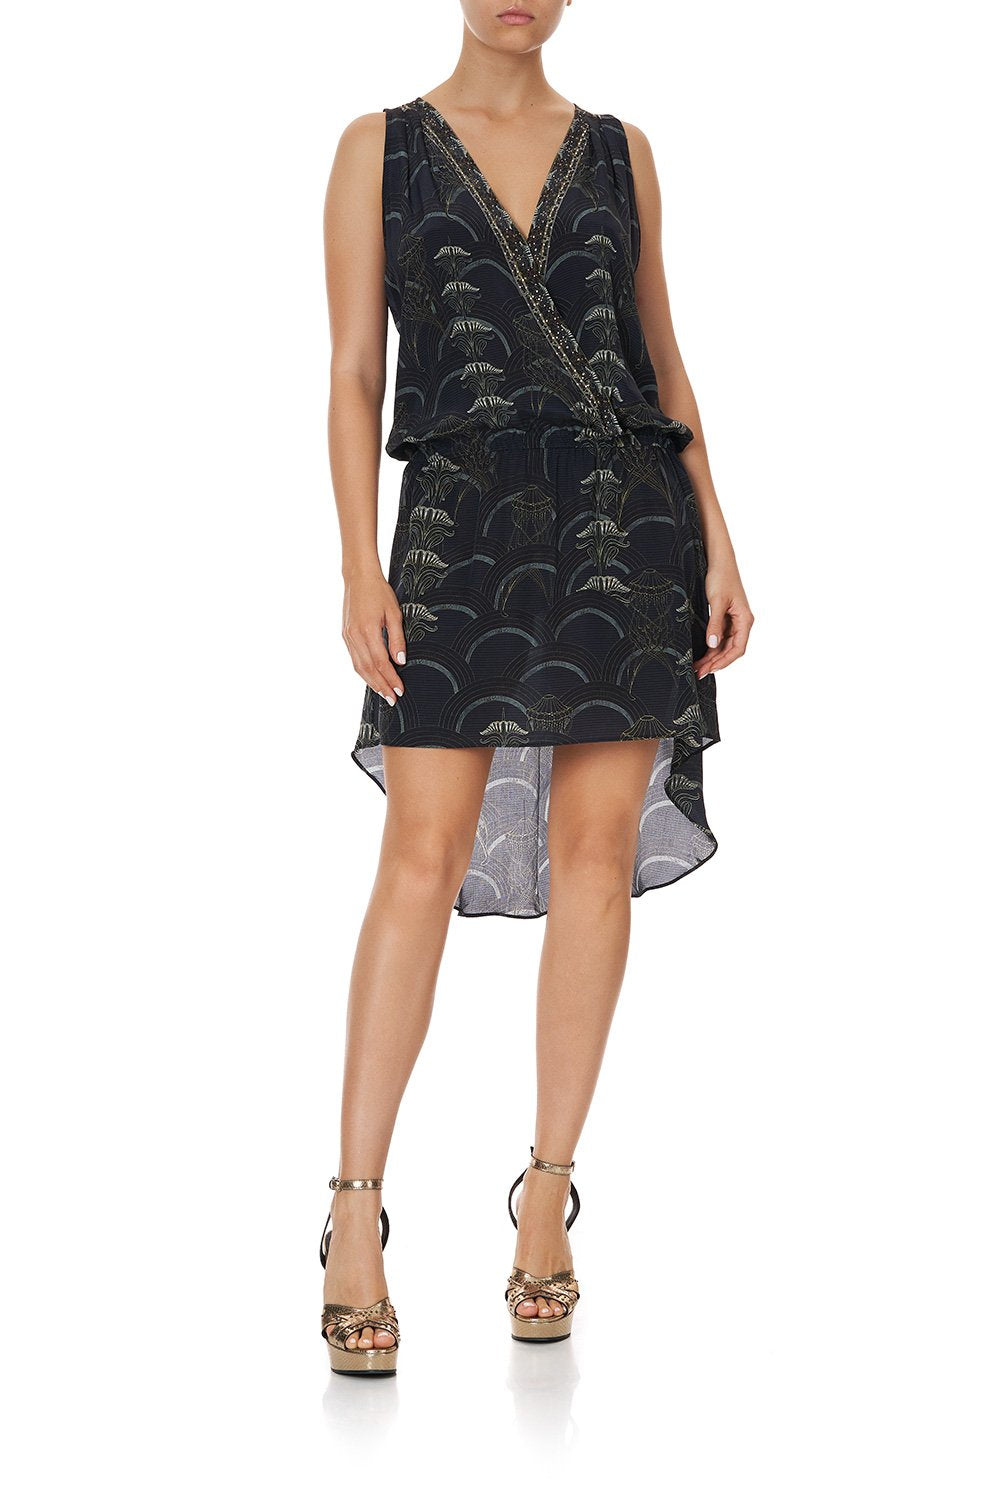 CROSS OVER DRESS WITH LONG BACK WISE WINGS